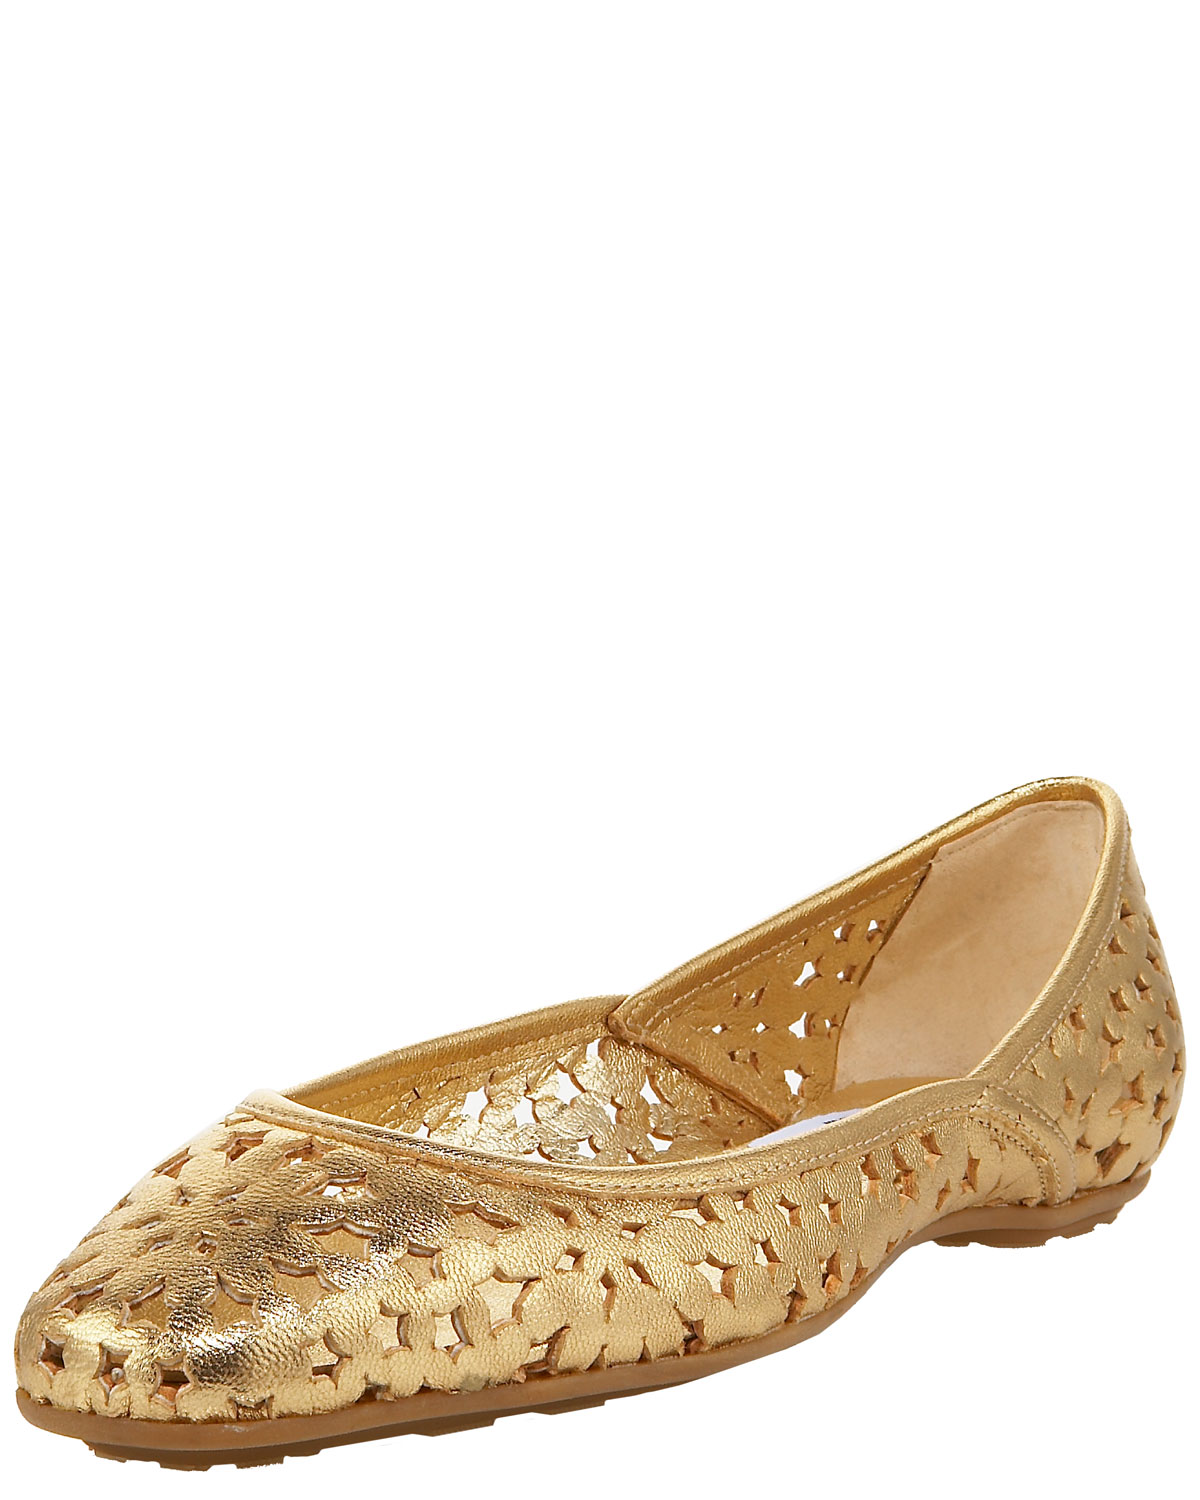 cheap sale clearance store Jimmy Choo Star-Cutout Leather Flats outlet shopping online buy cheap in China 9GXFU